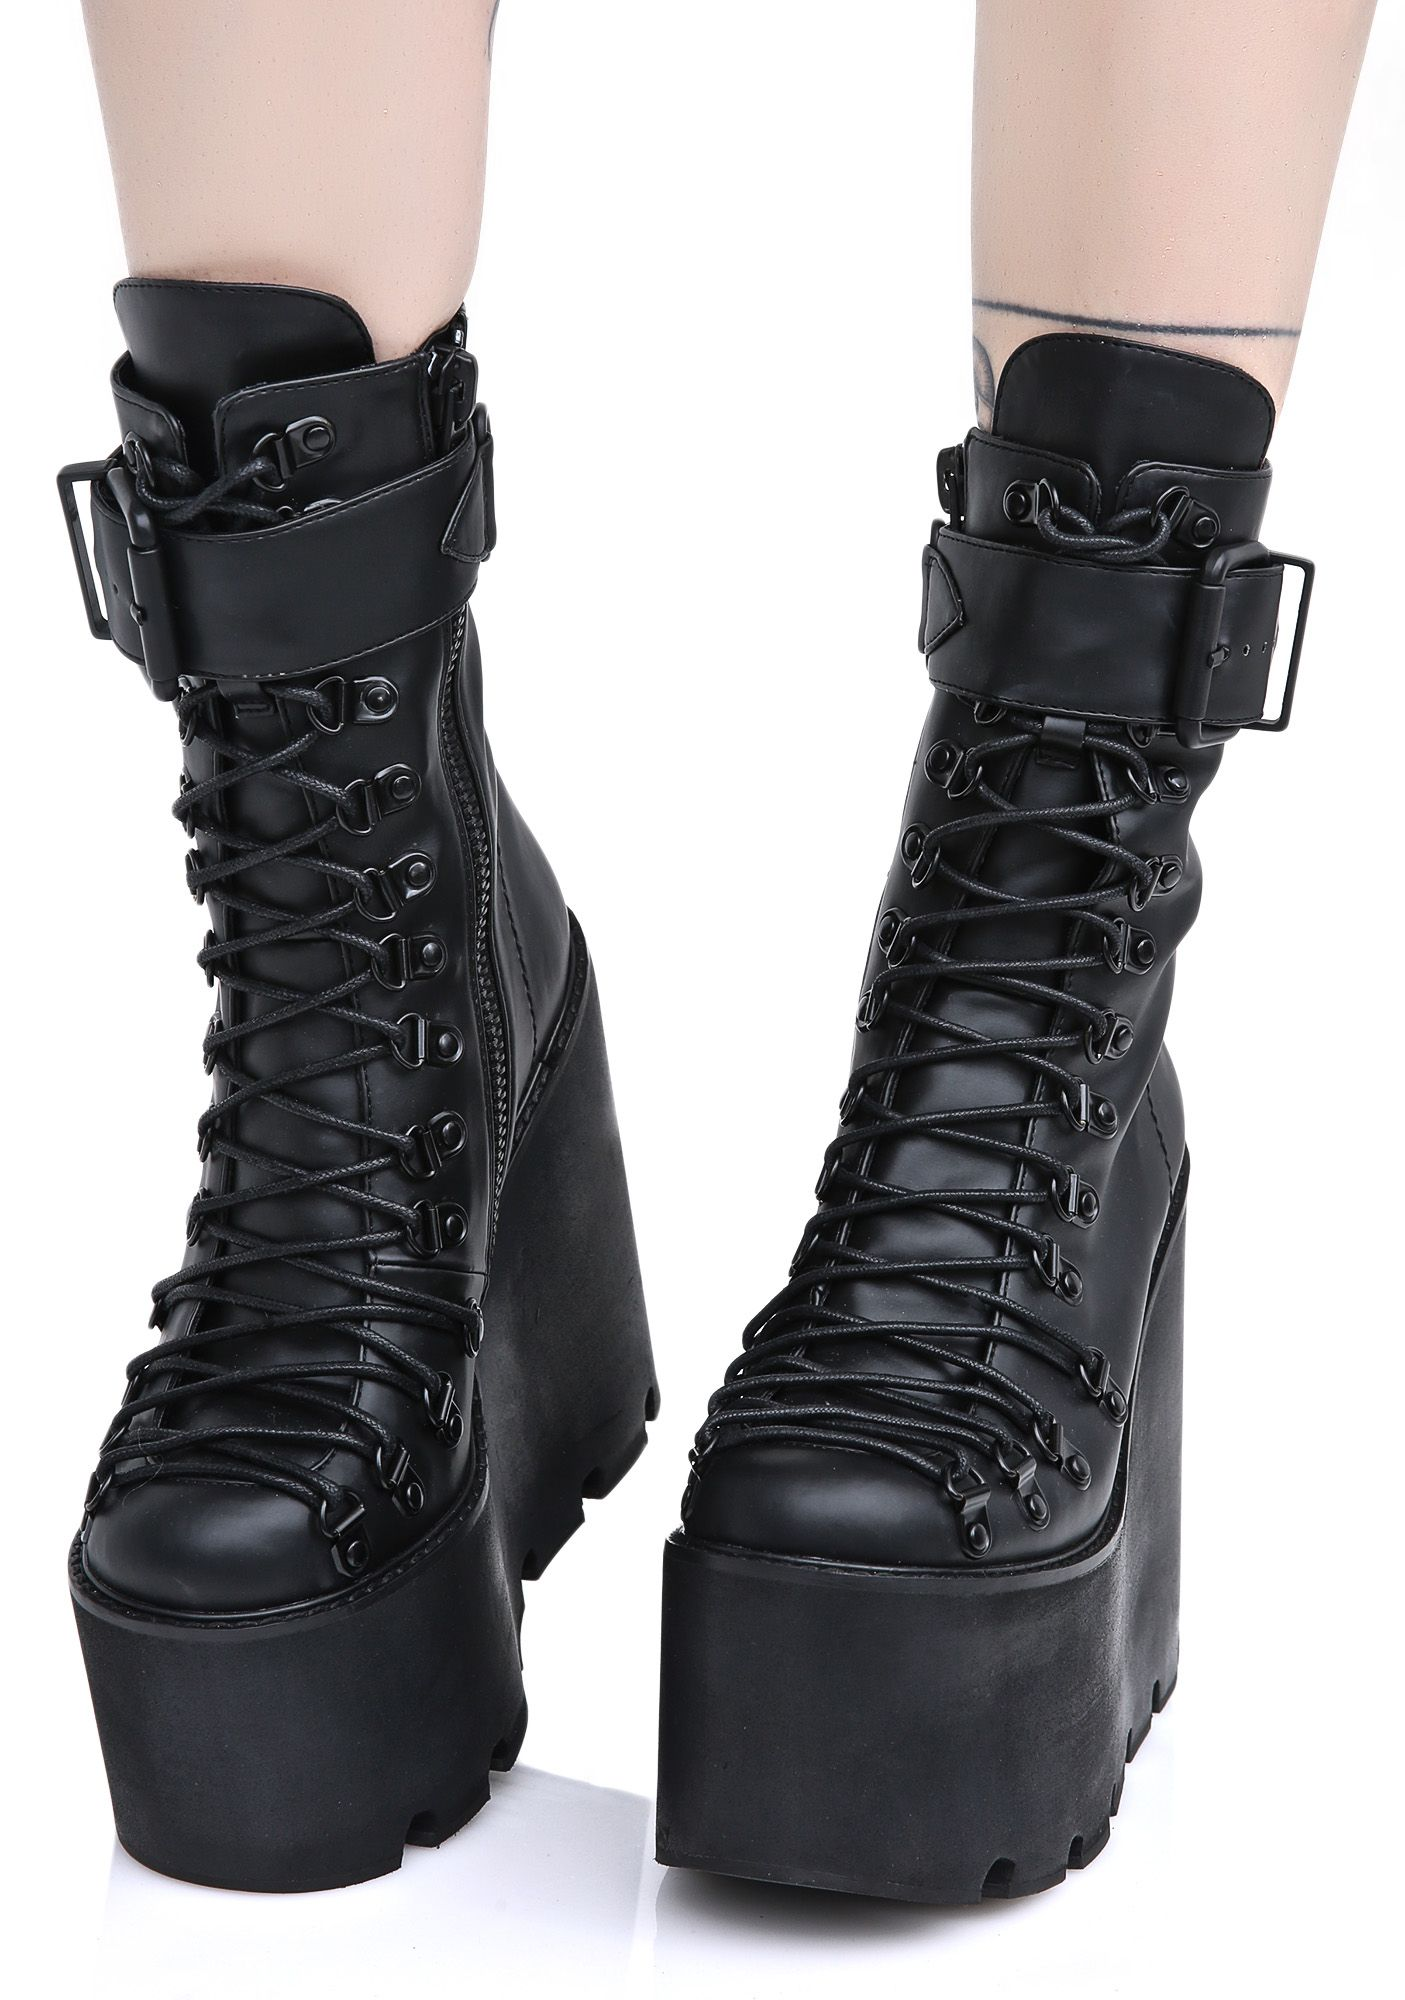 a79336908d1c Current Mood Traitor Boots  gothboots